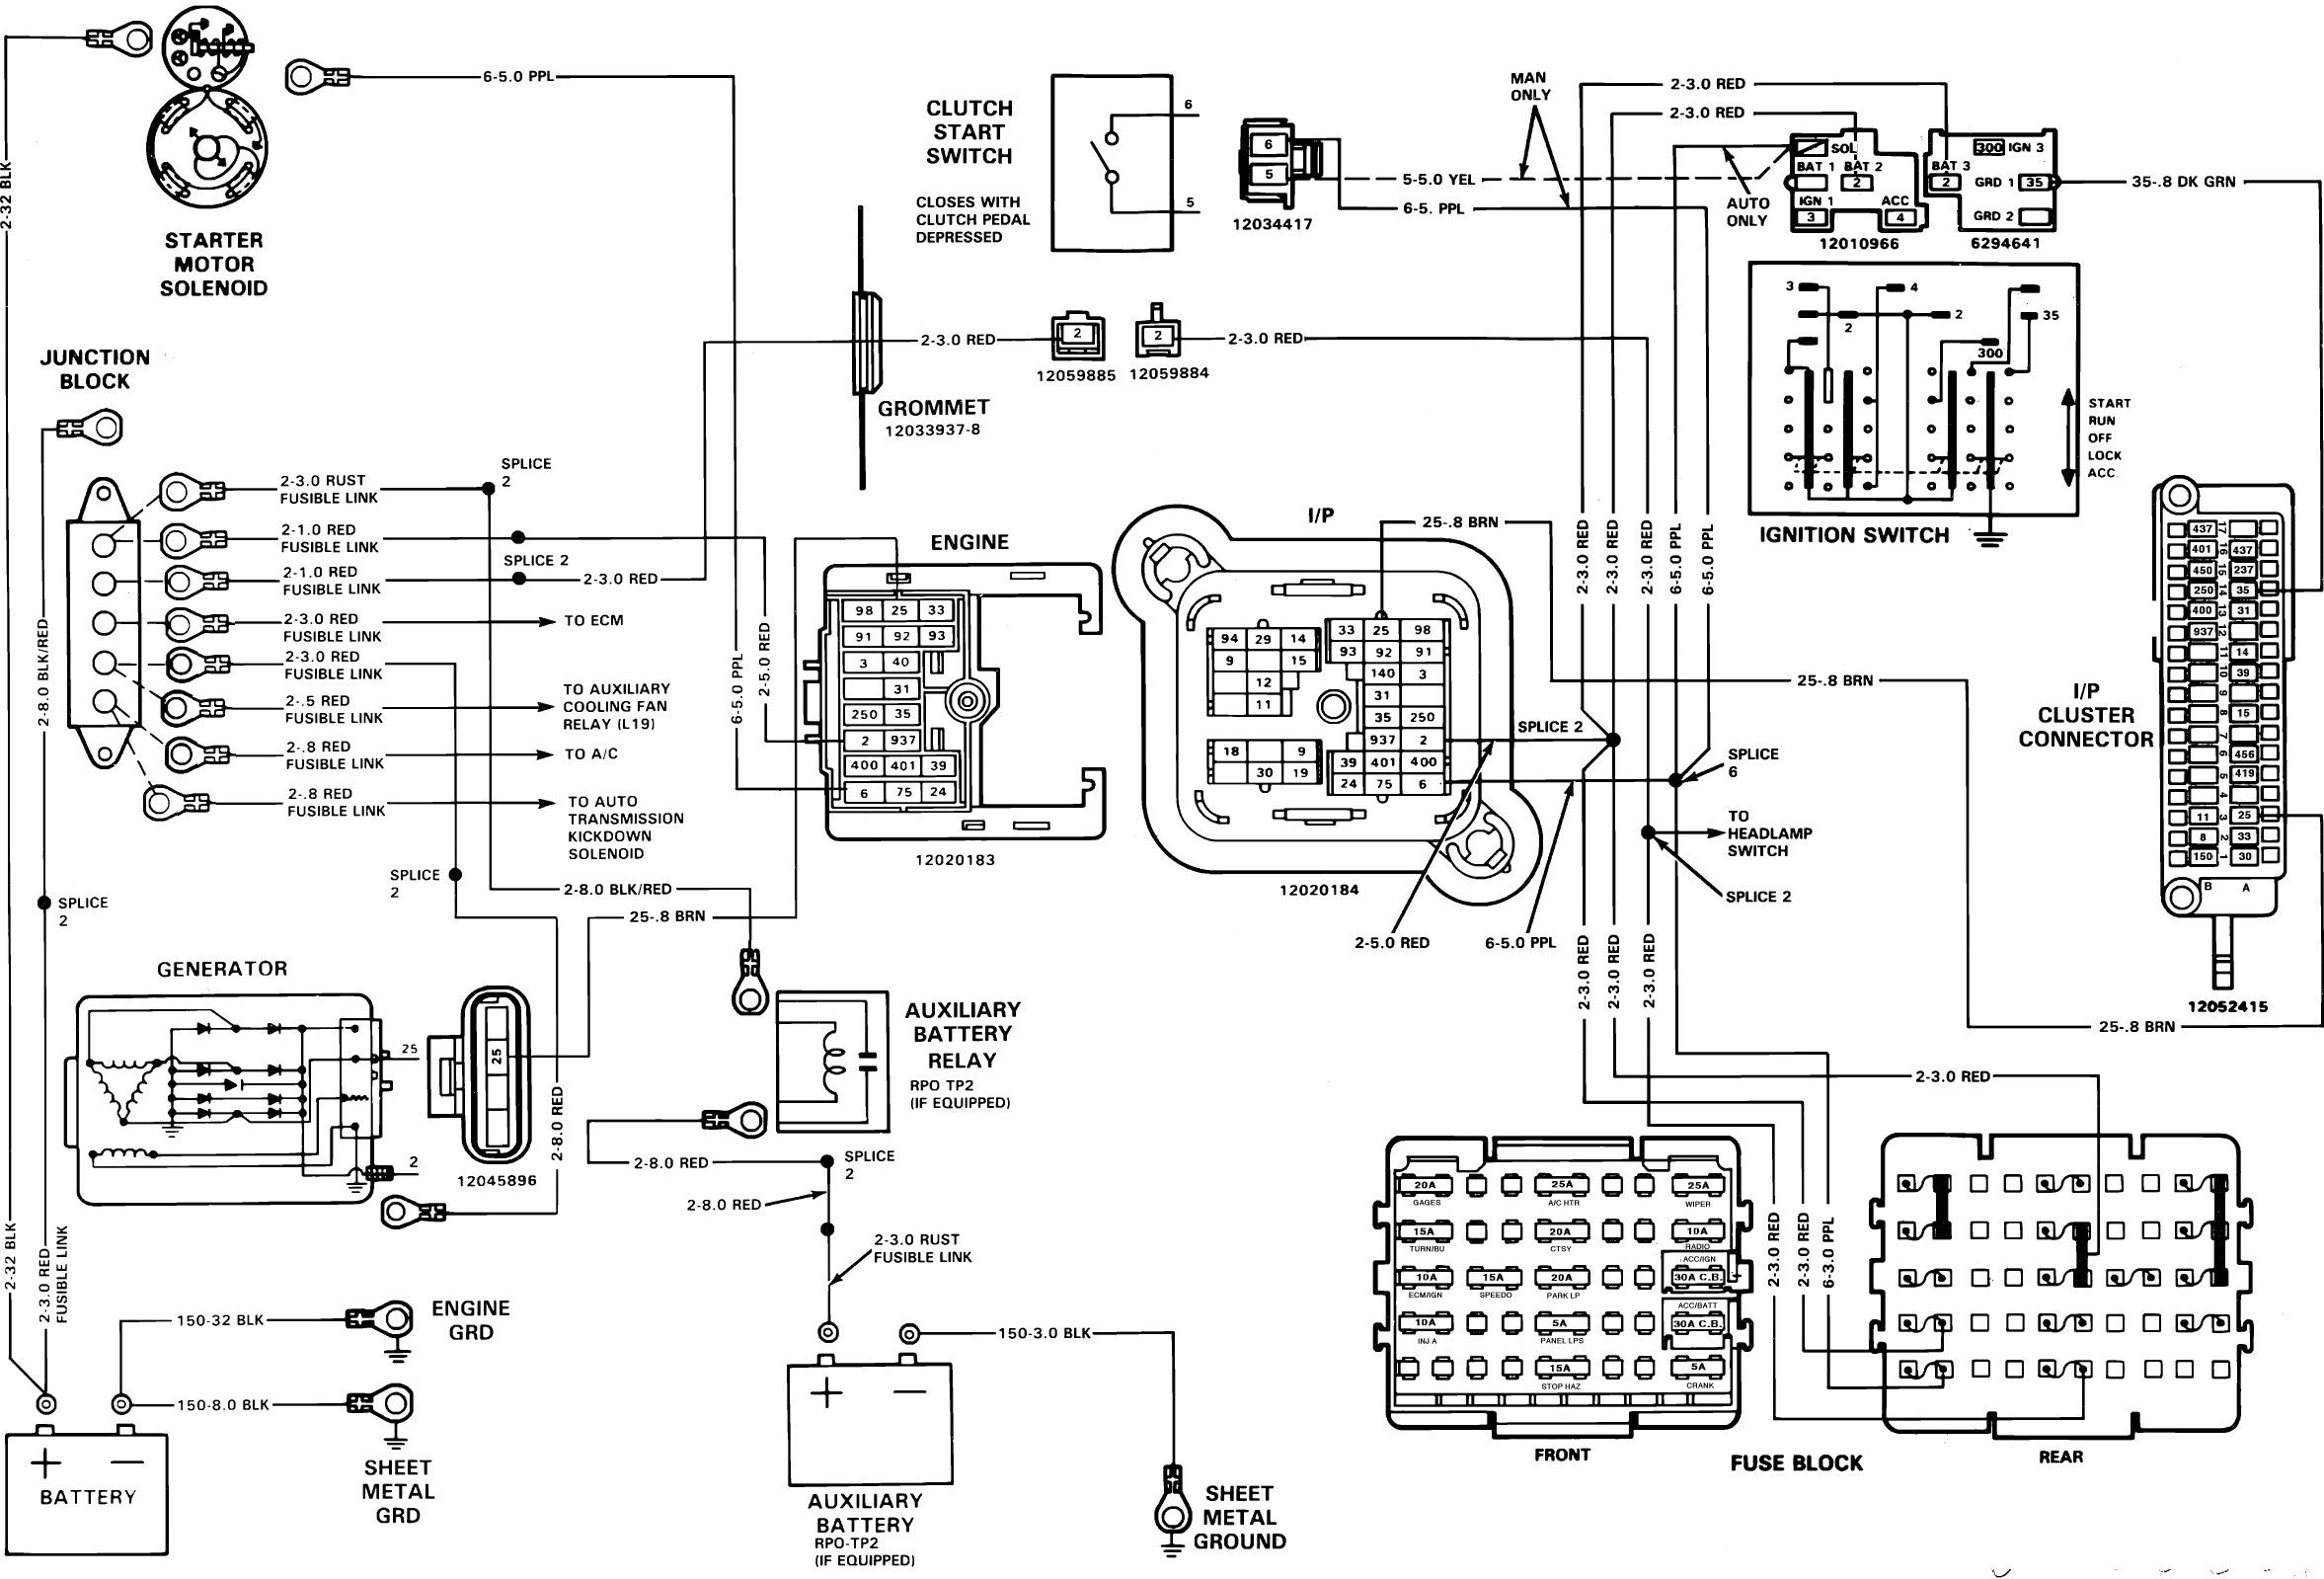 97 FORD HEADLIGHT SWITCH WIRING HARNESS PLUG DIAGRAM